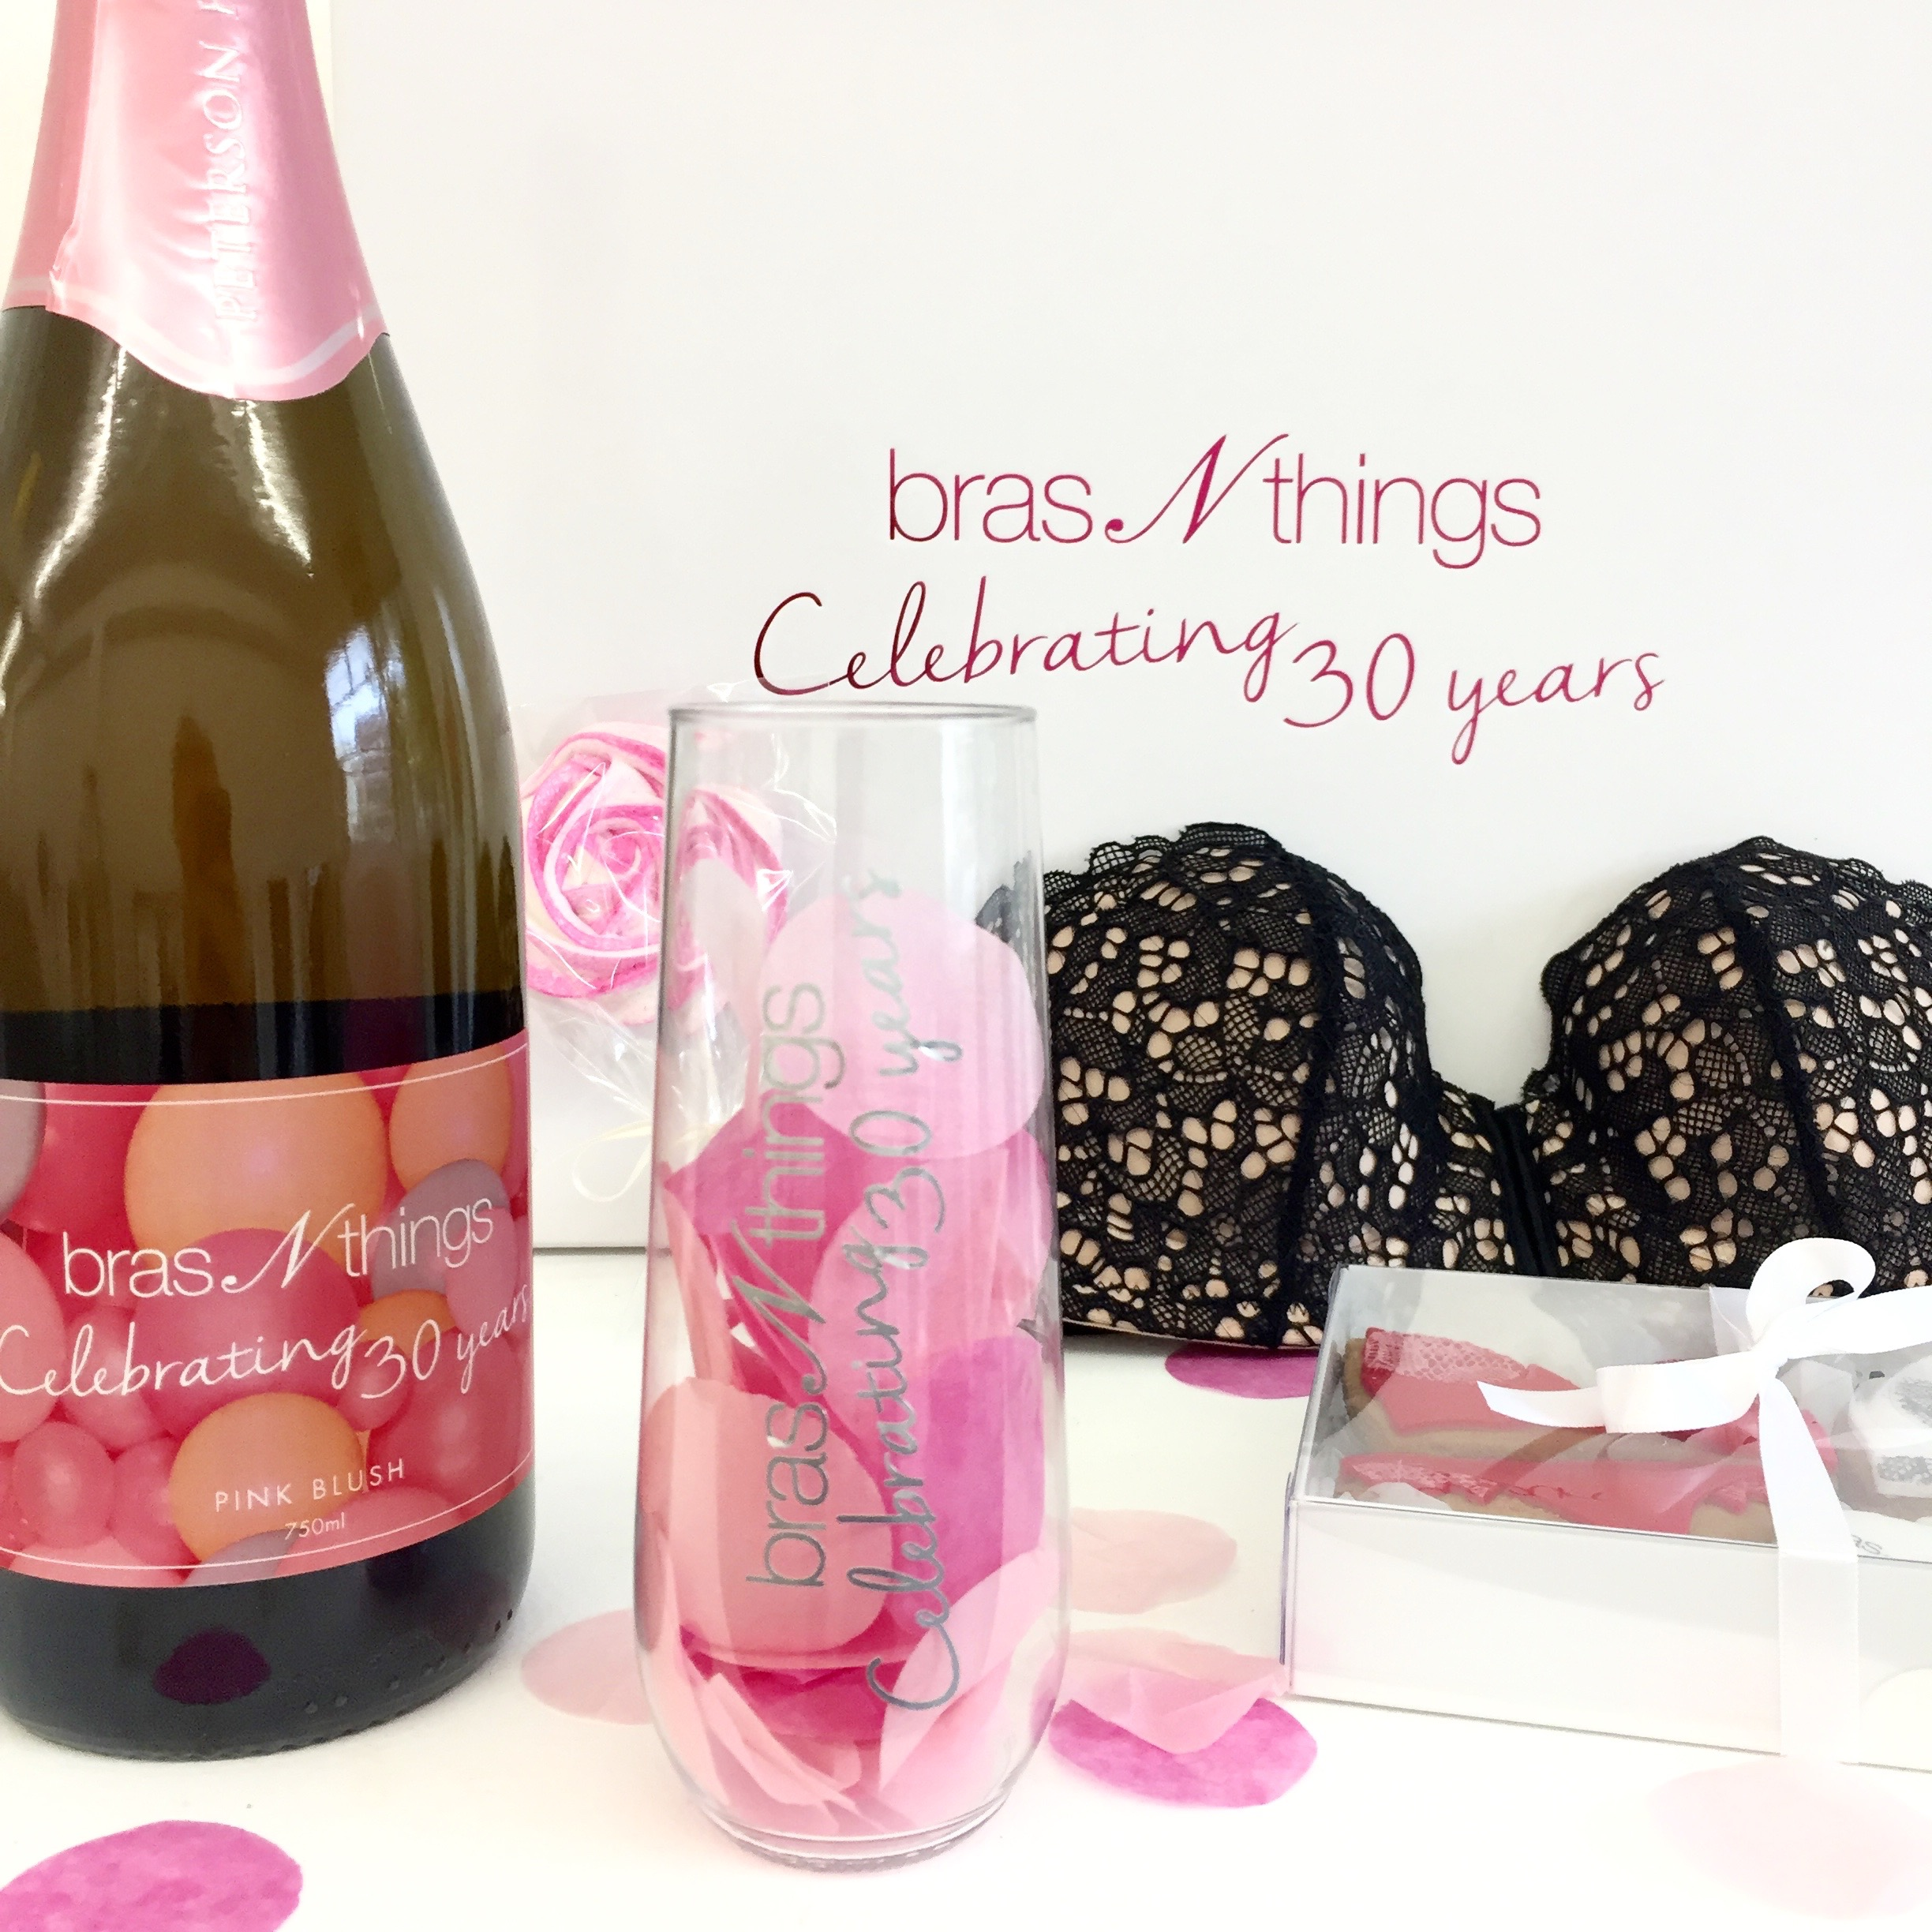 FUN AND FLIRTY 30TH BIRTHDAY BRAS N THINGS MEDIA KIT GIFT BOXES